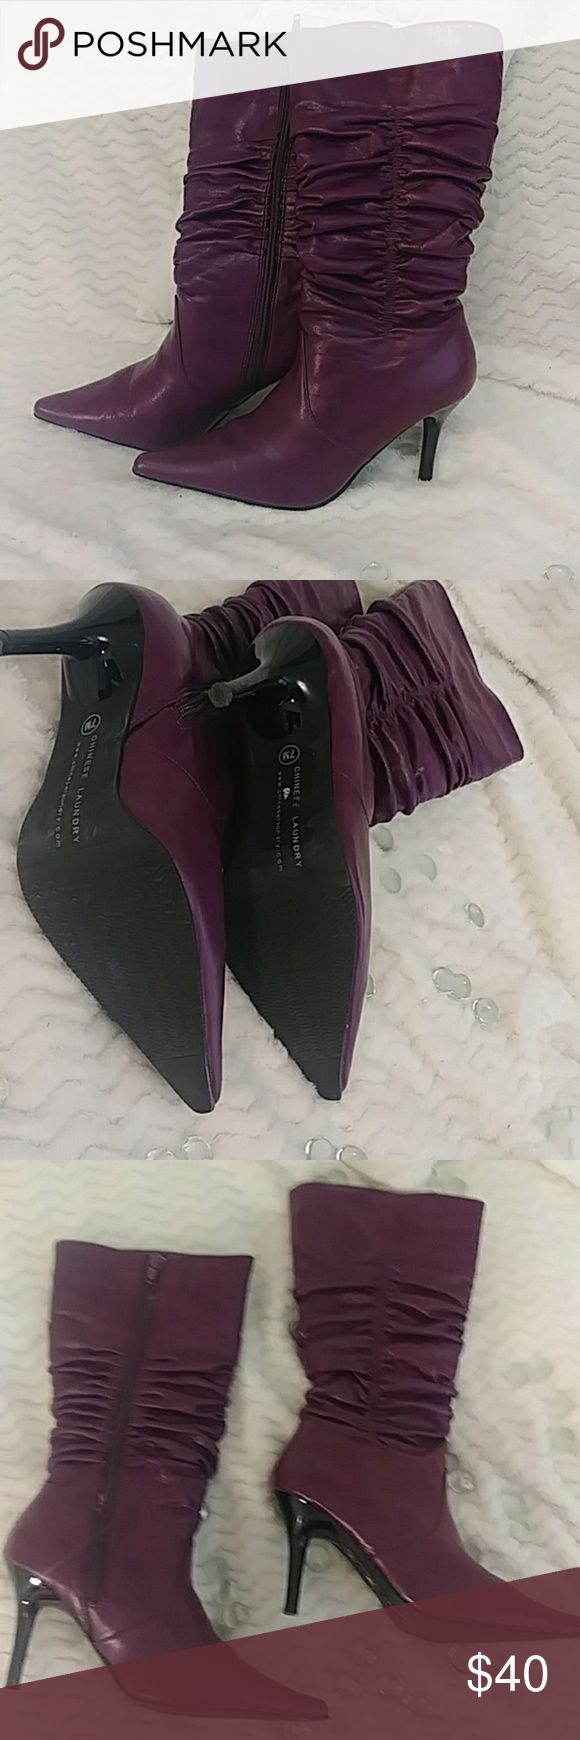 NWOT Plum Purple Chinese Laundry Boots Never worn pretty purple Chinese Laundry …